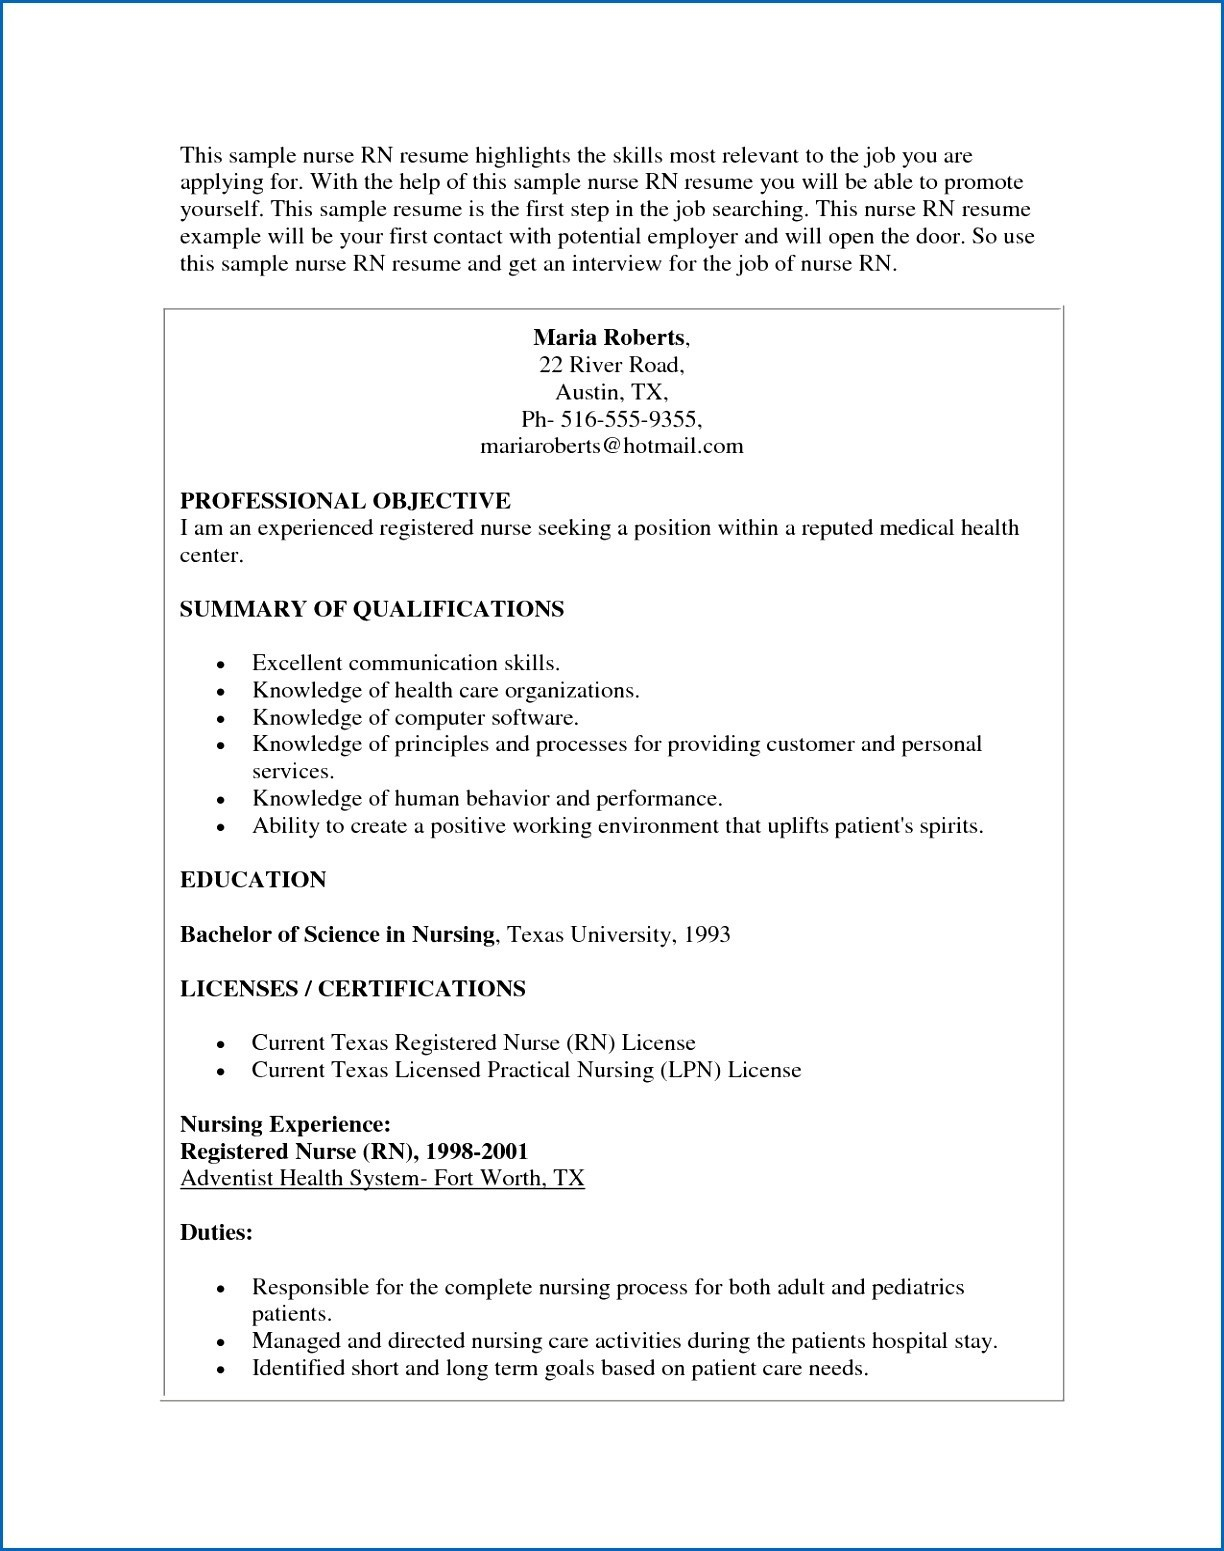 Home Health Nurse Resume - Nursing Skills Resume Awesome Nursing Resume Lovely Rn Bsn Resume